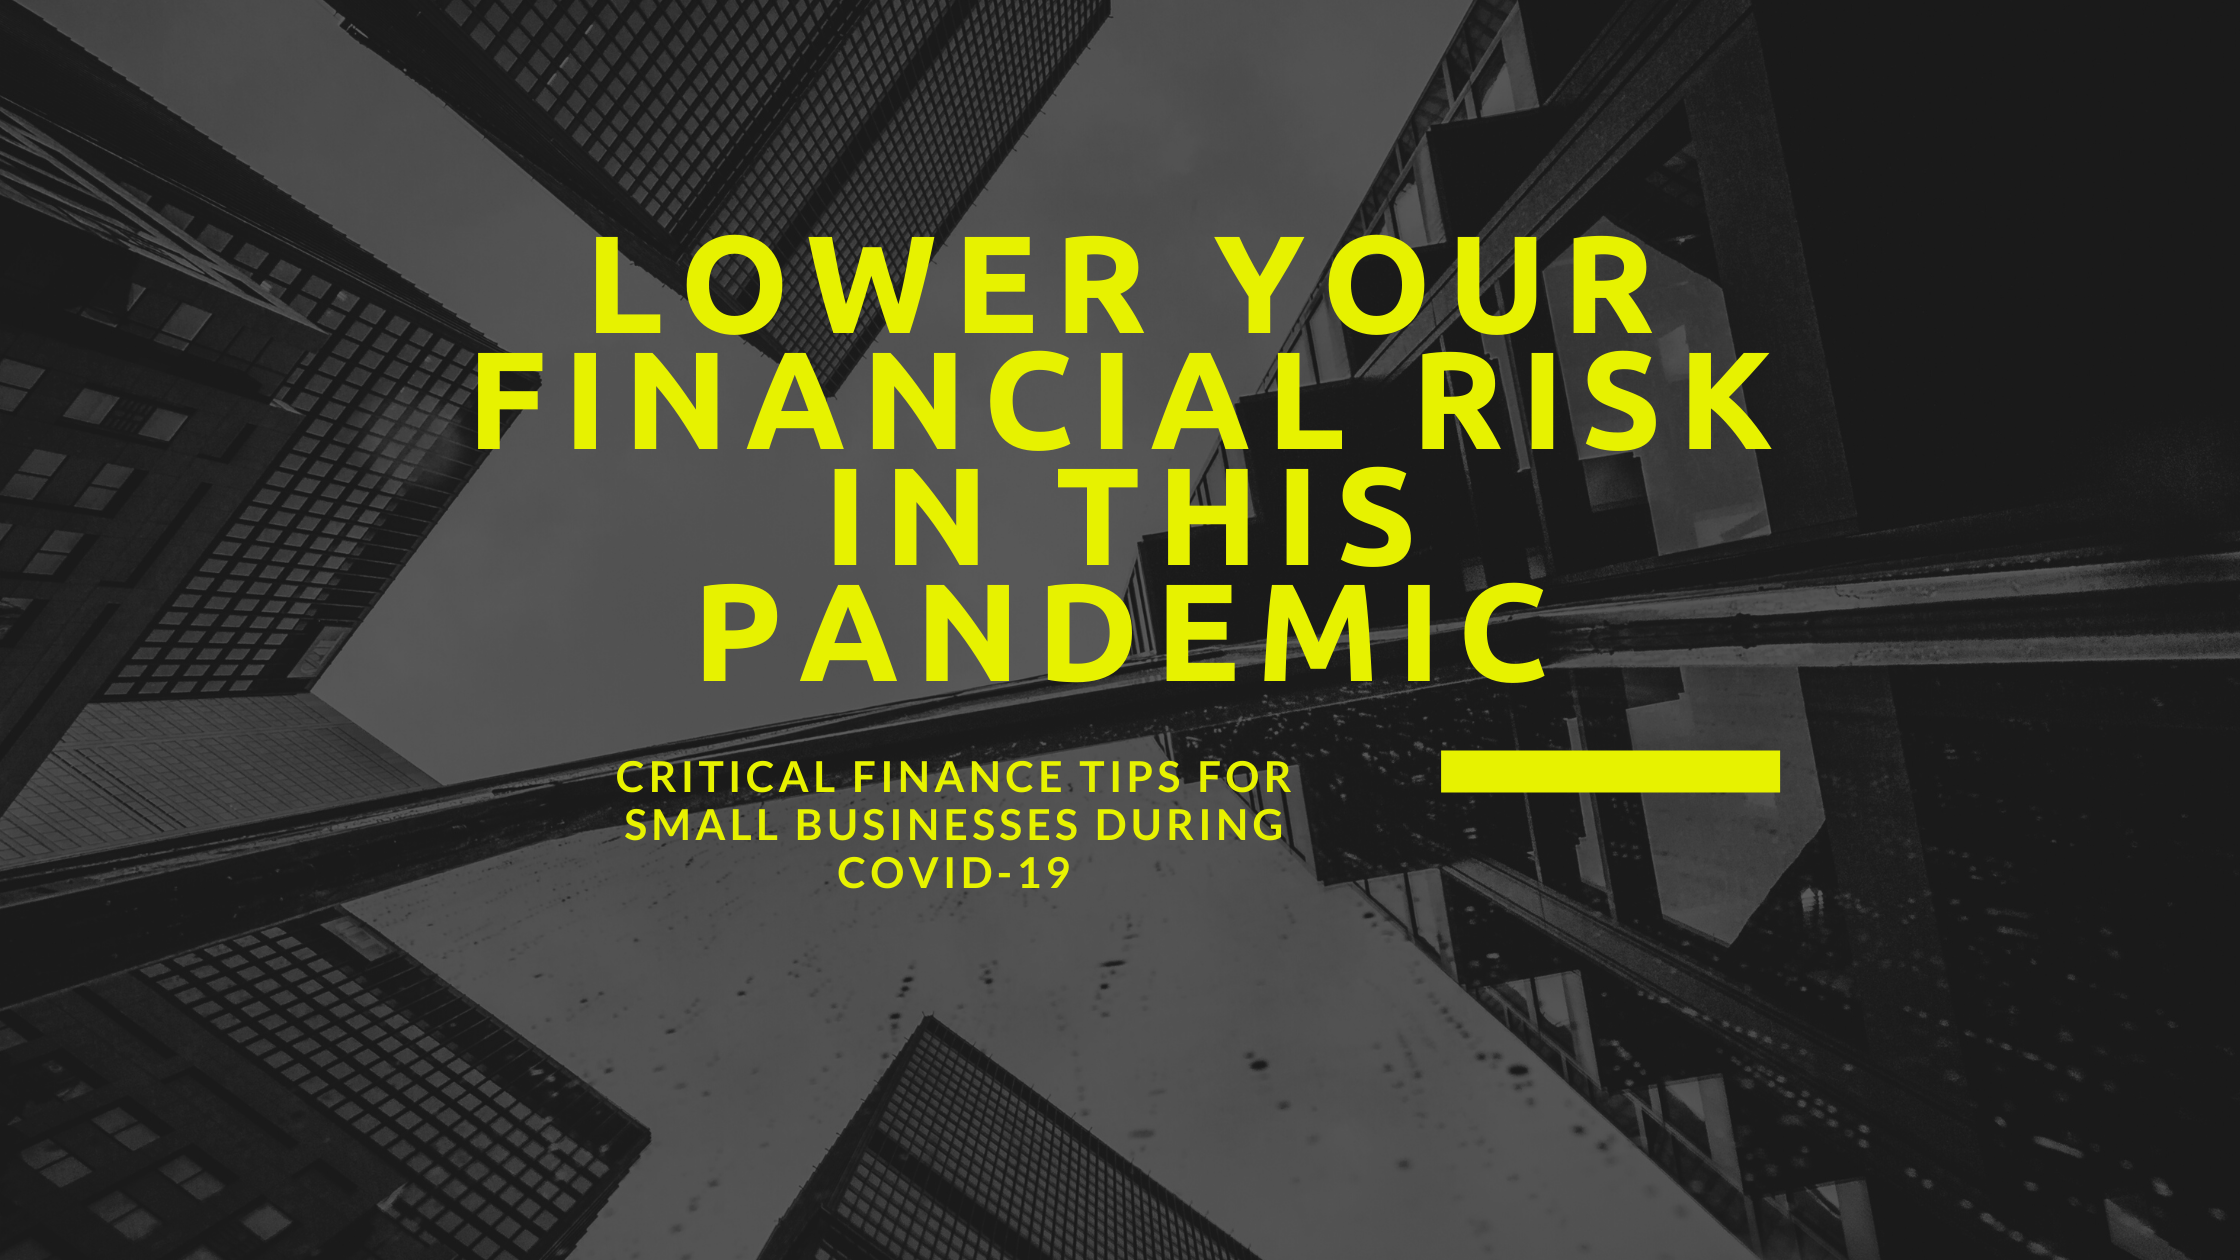 Lower Your Financial Risk in This Pandemic- Critical Finance Tips for Small Businesses During COVID-19